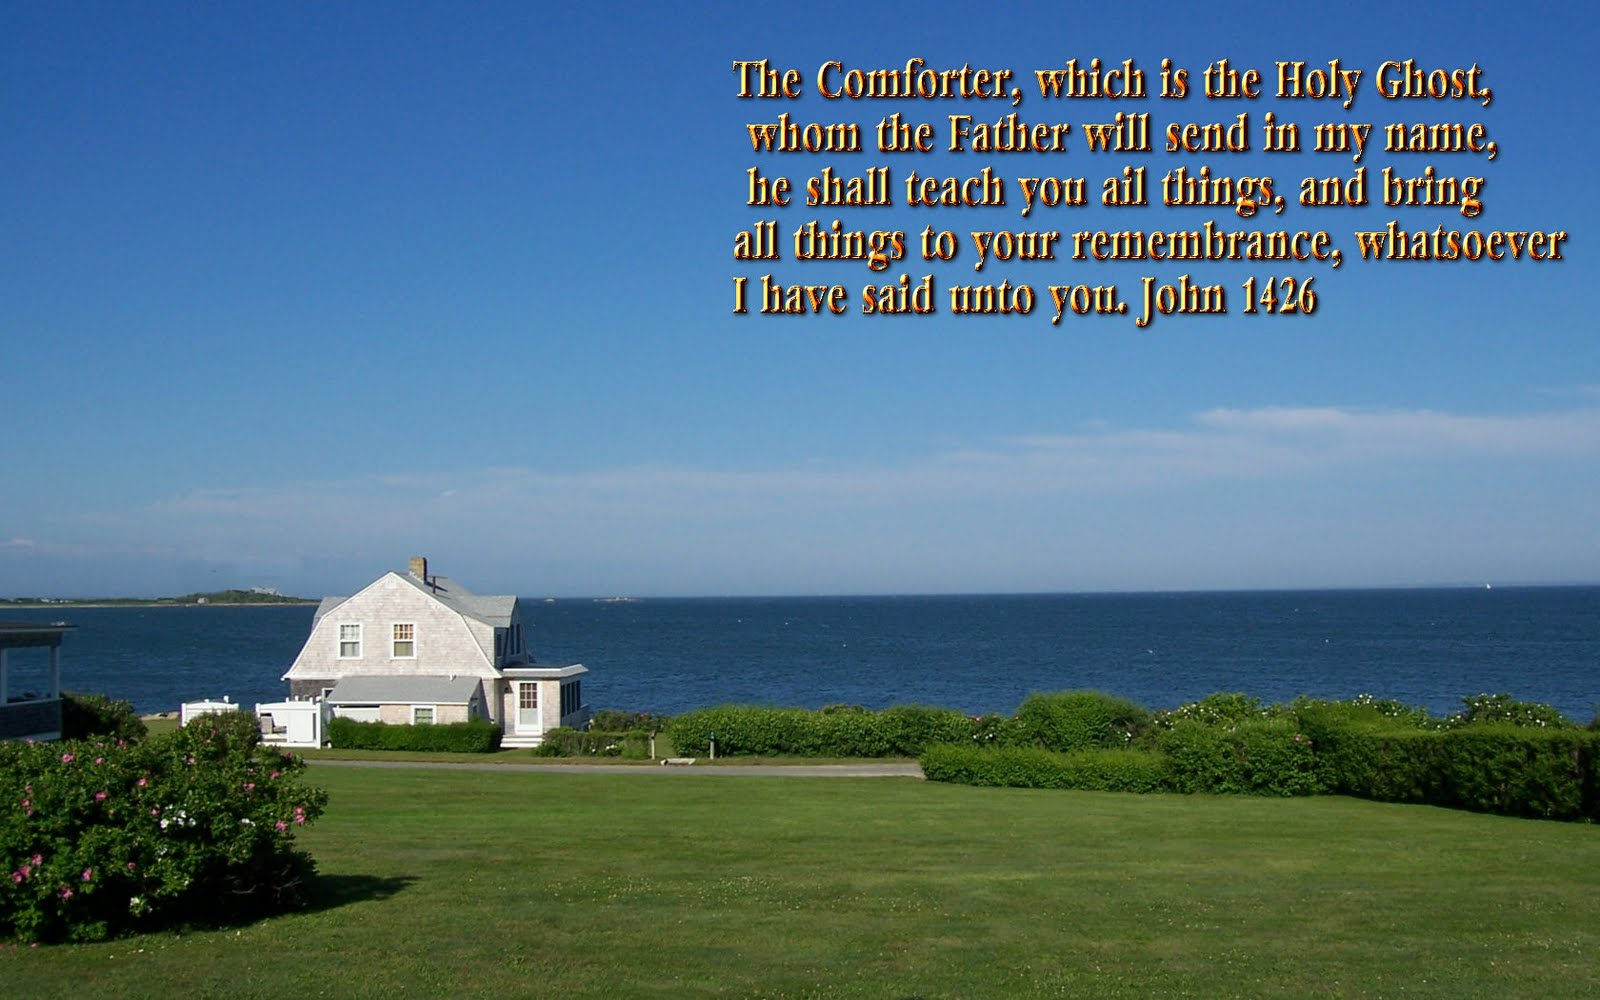 scenic wallpapers bible - photo #31